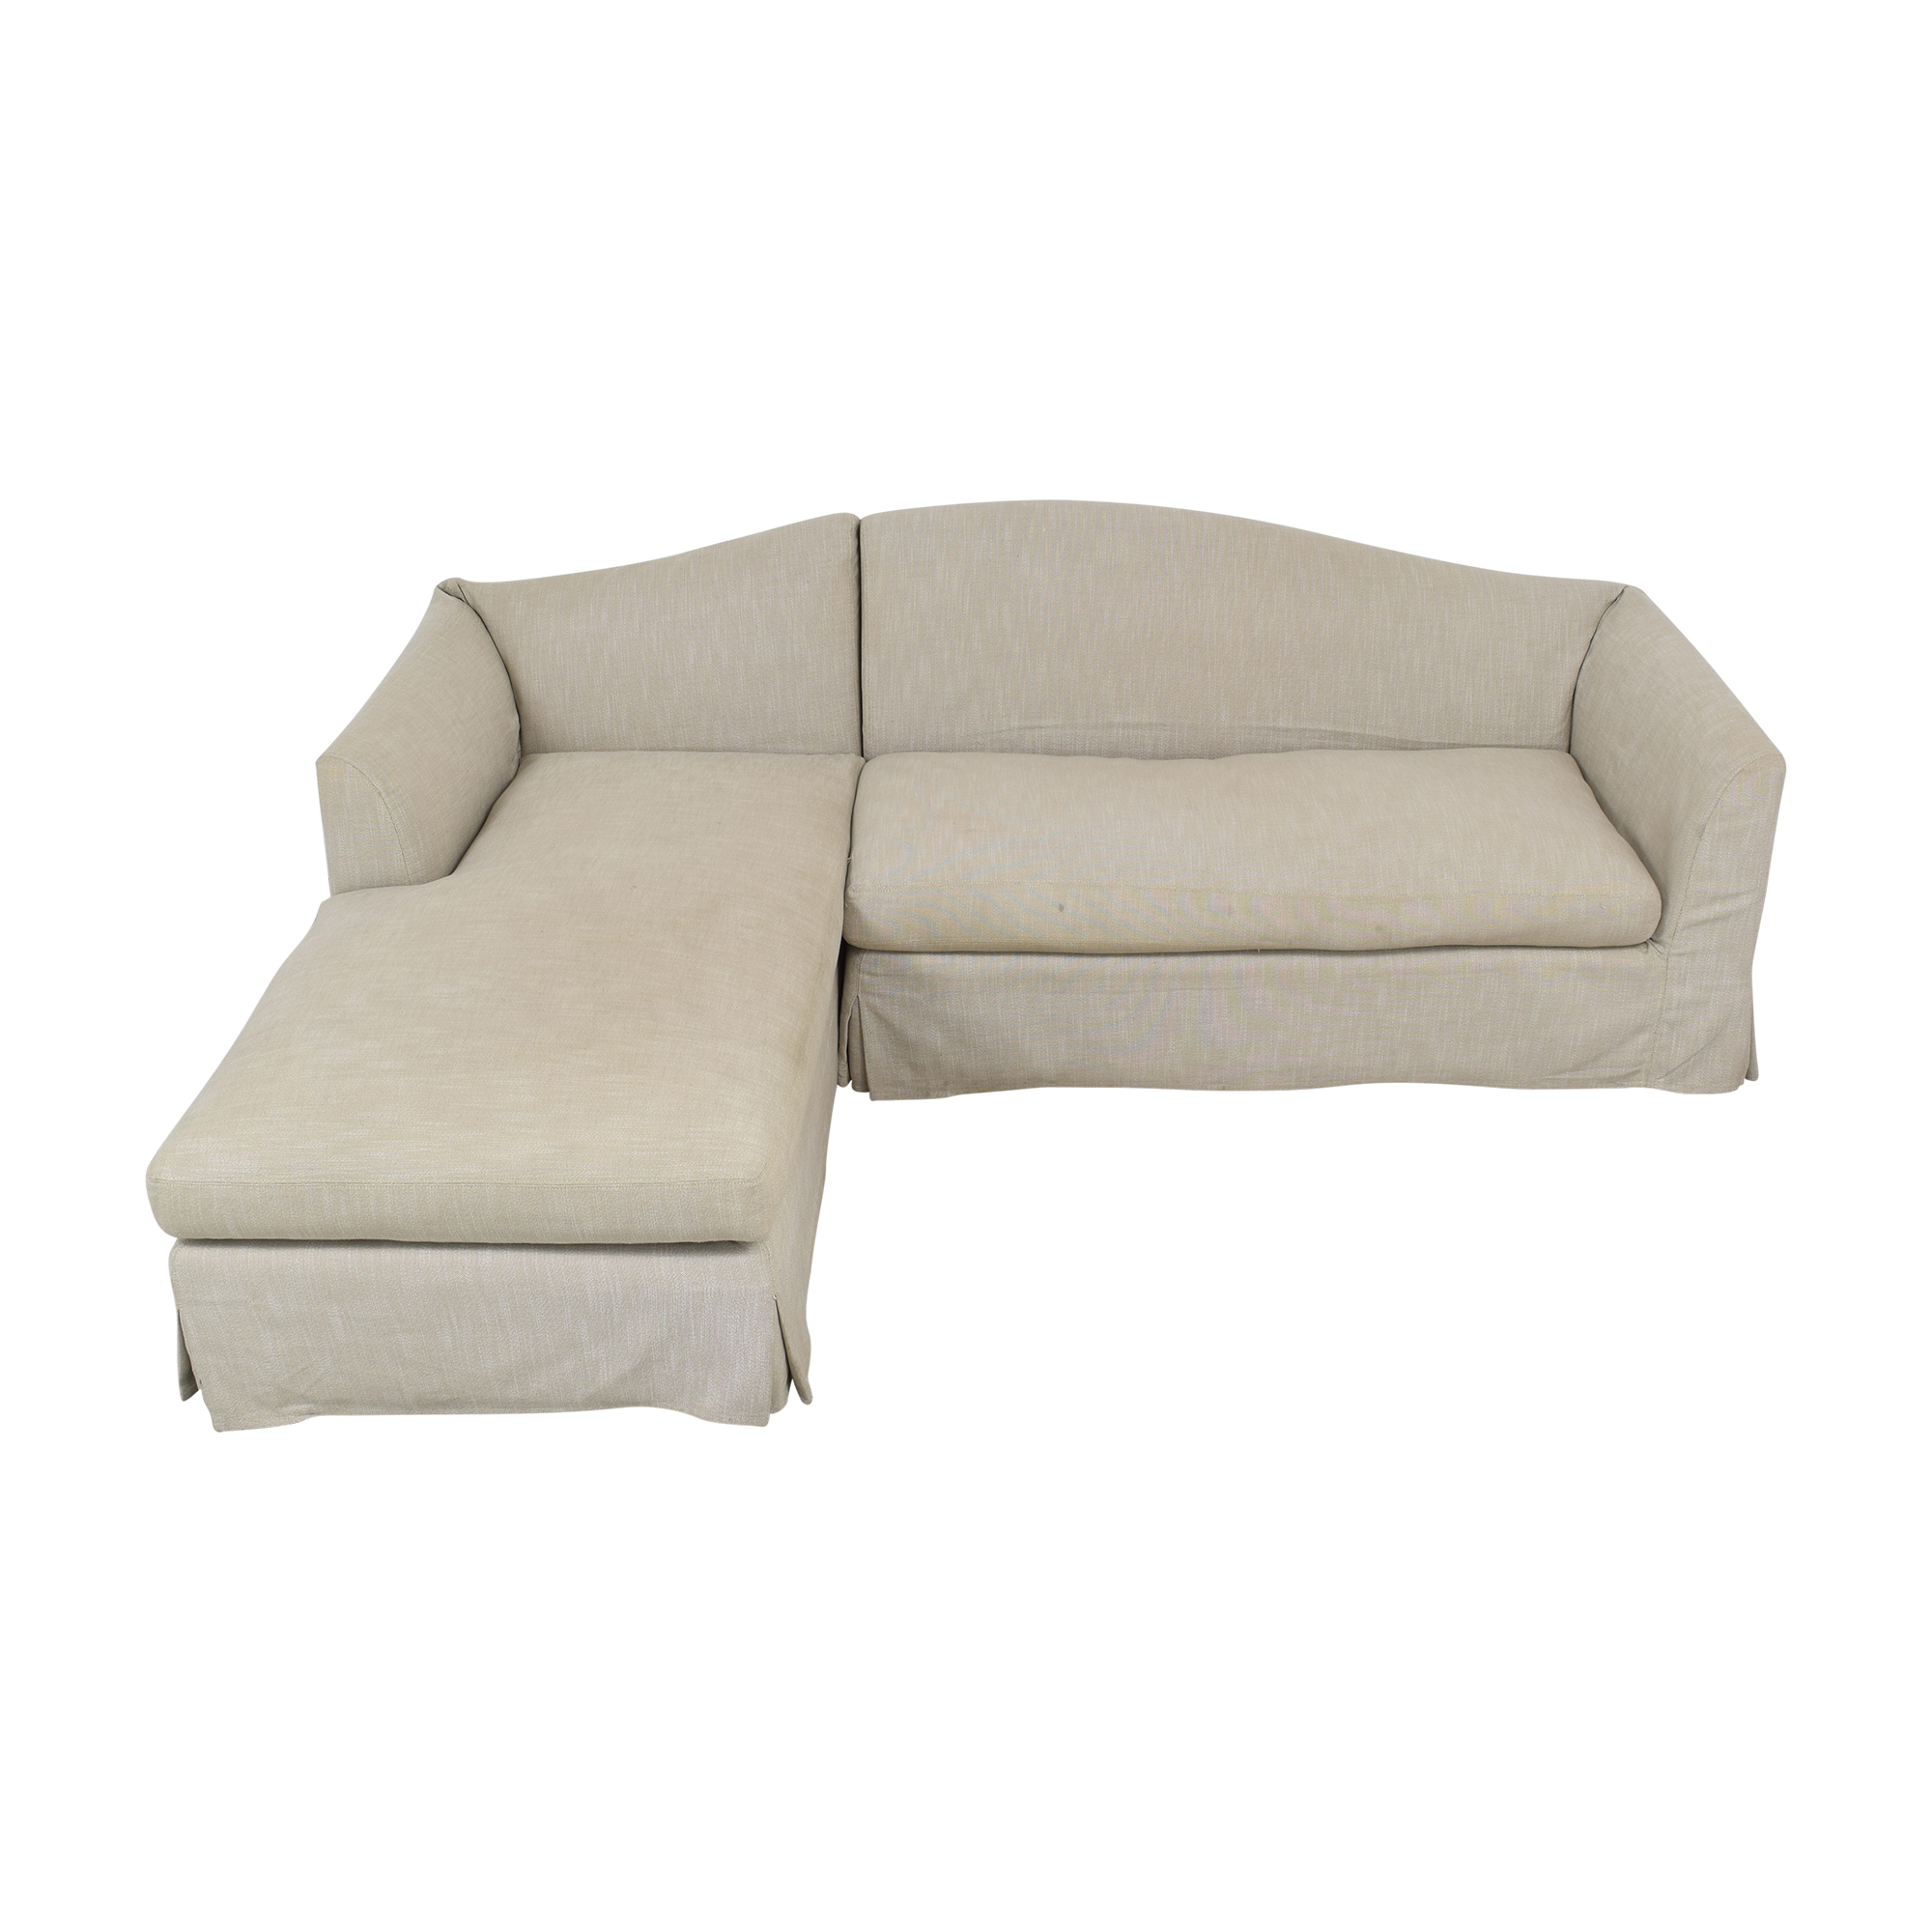 Restoration Hardware Restoration Hardware Belgian Camelback Slipcovered Sectional Sofa with Chaise on sale